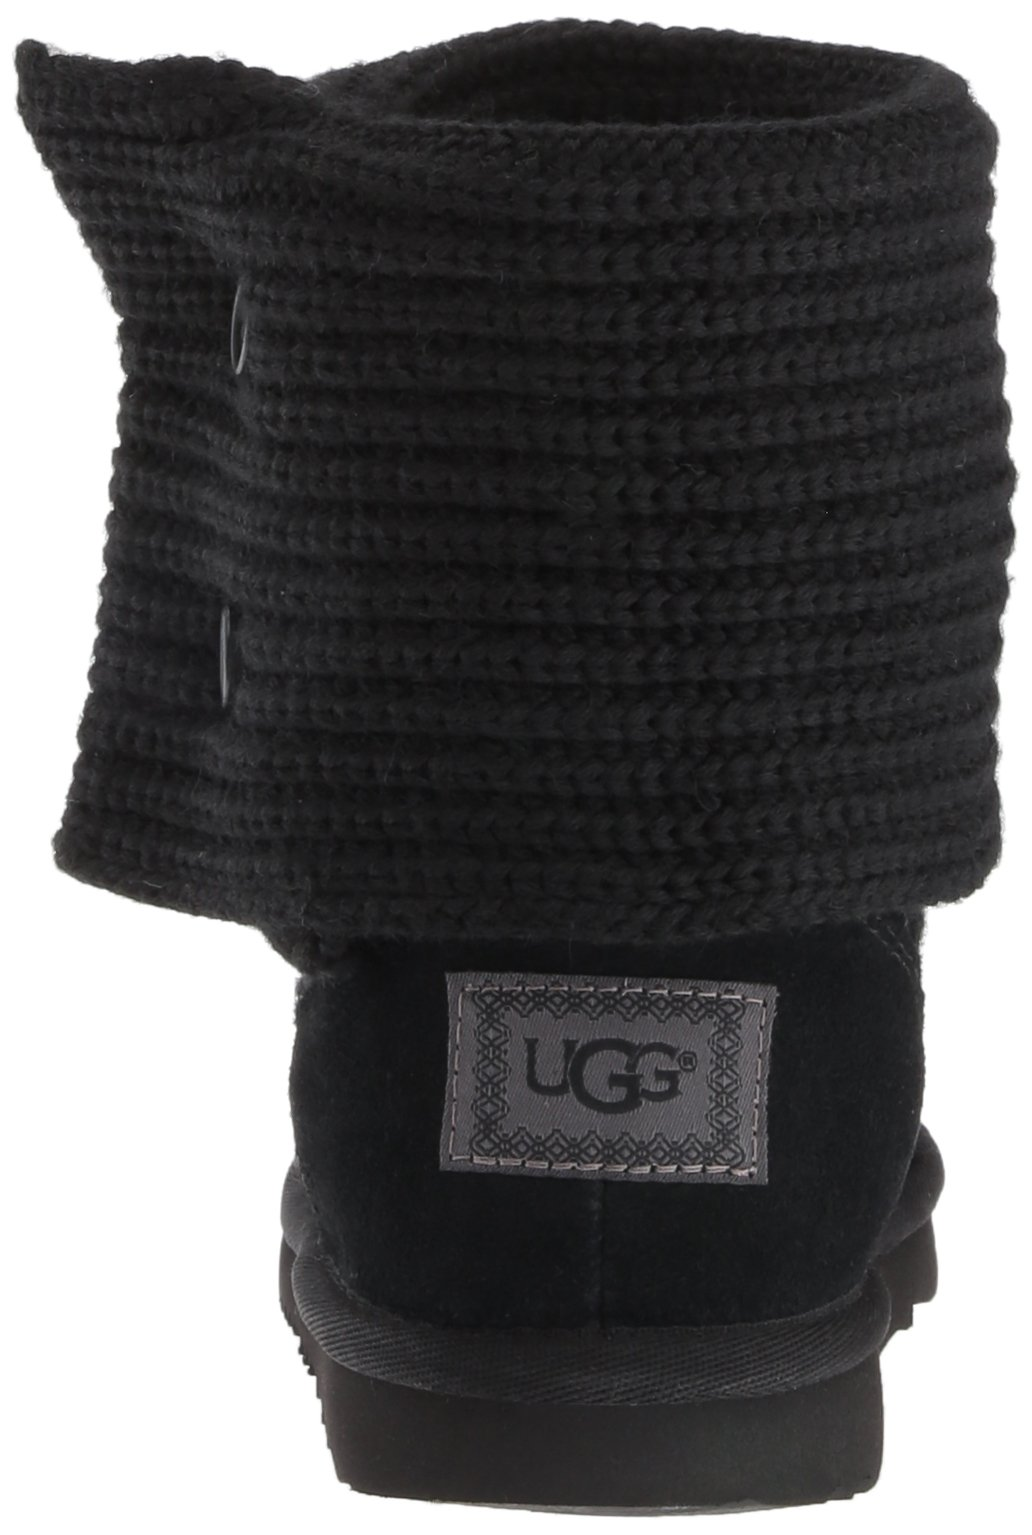 UGG Girls K Cardy II Pull-On Boot, Black, 8 M US Toddler by UGG (Image #2)